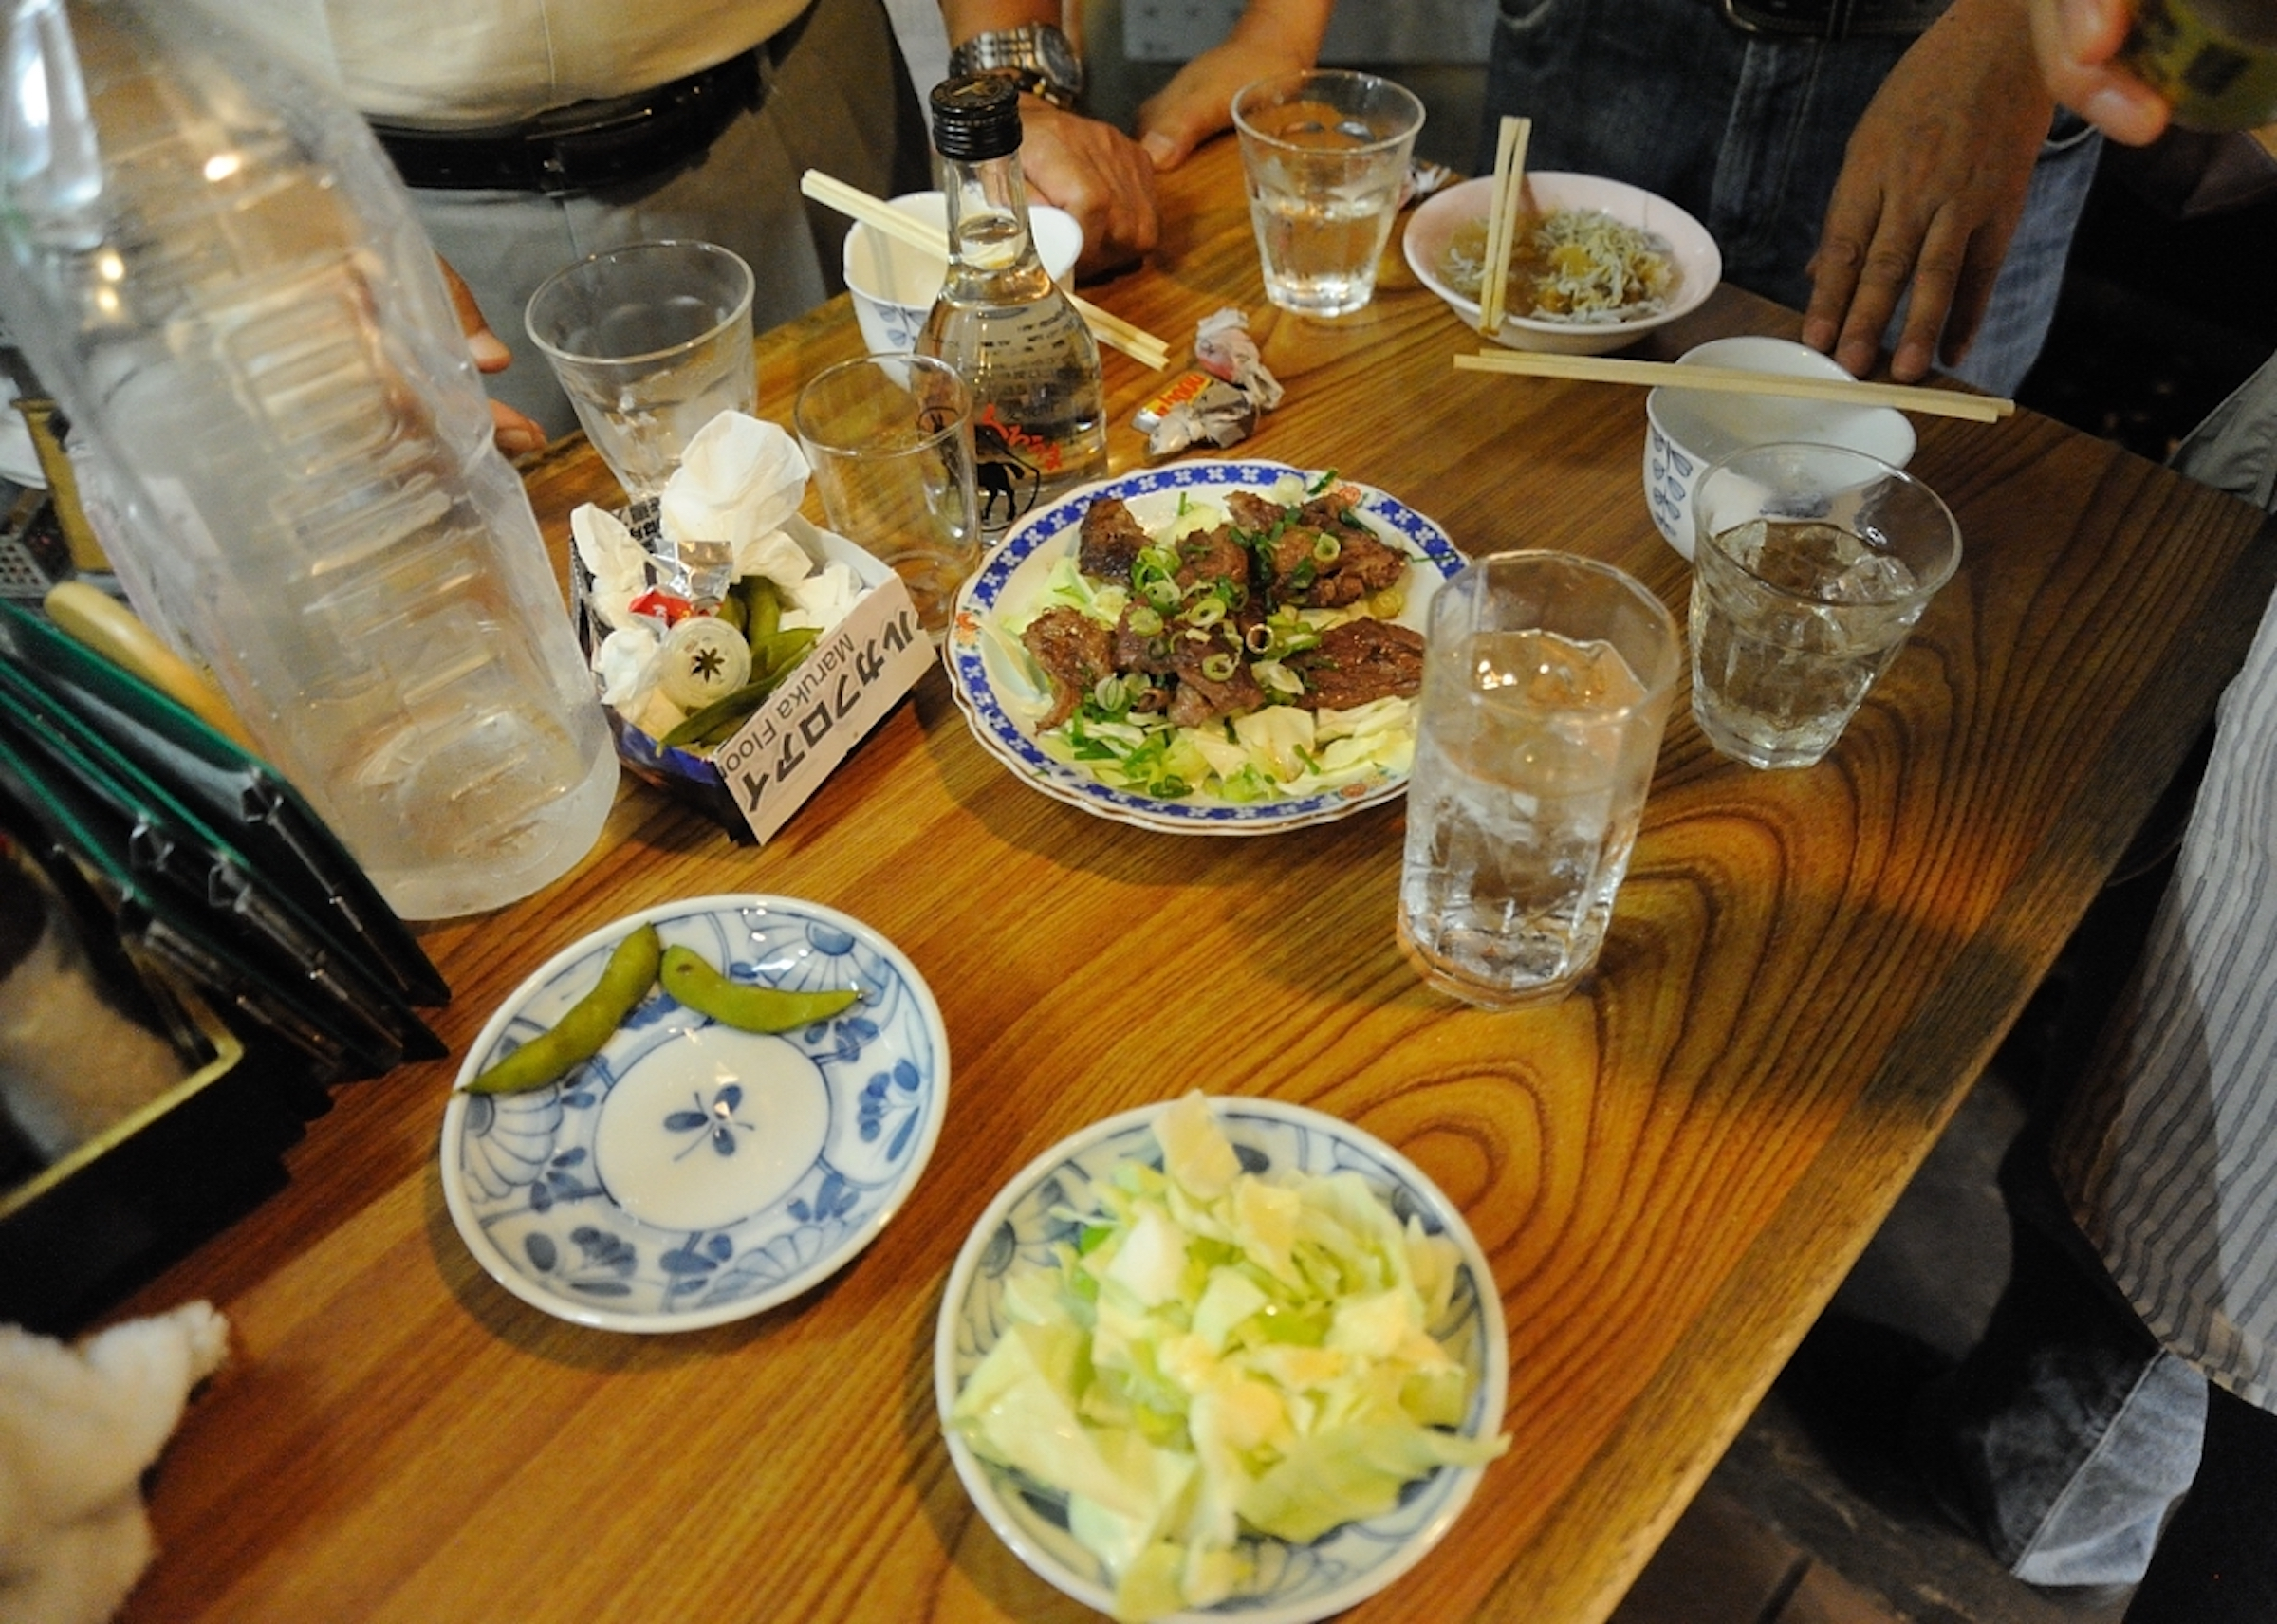 Photograph of a table covered with various dishes